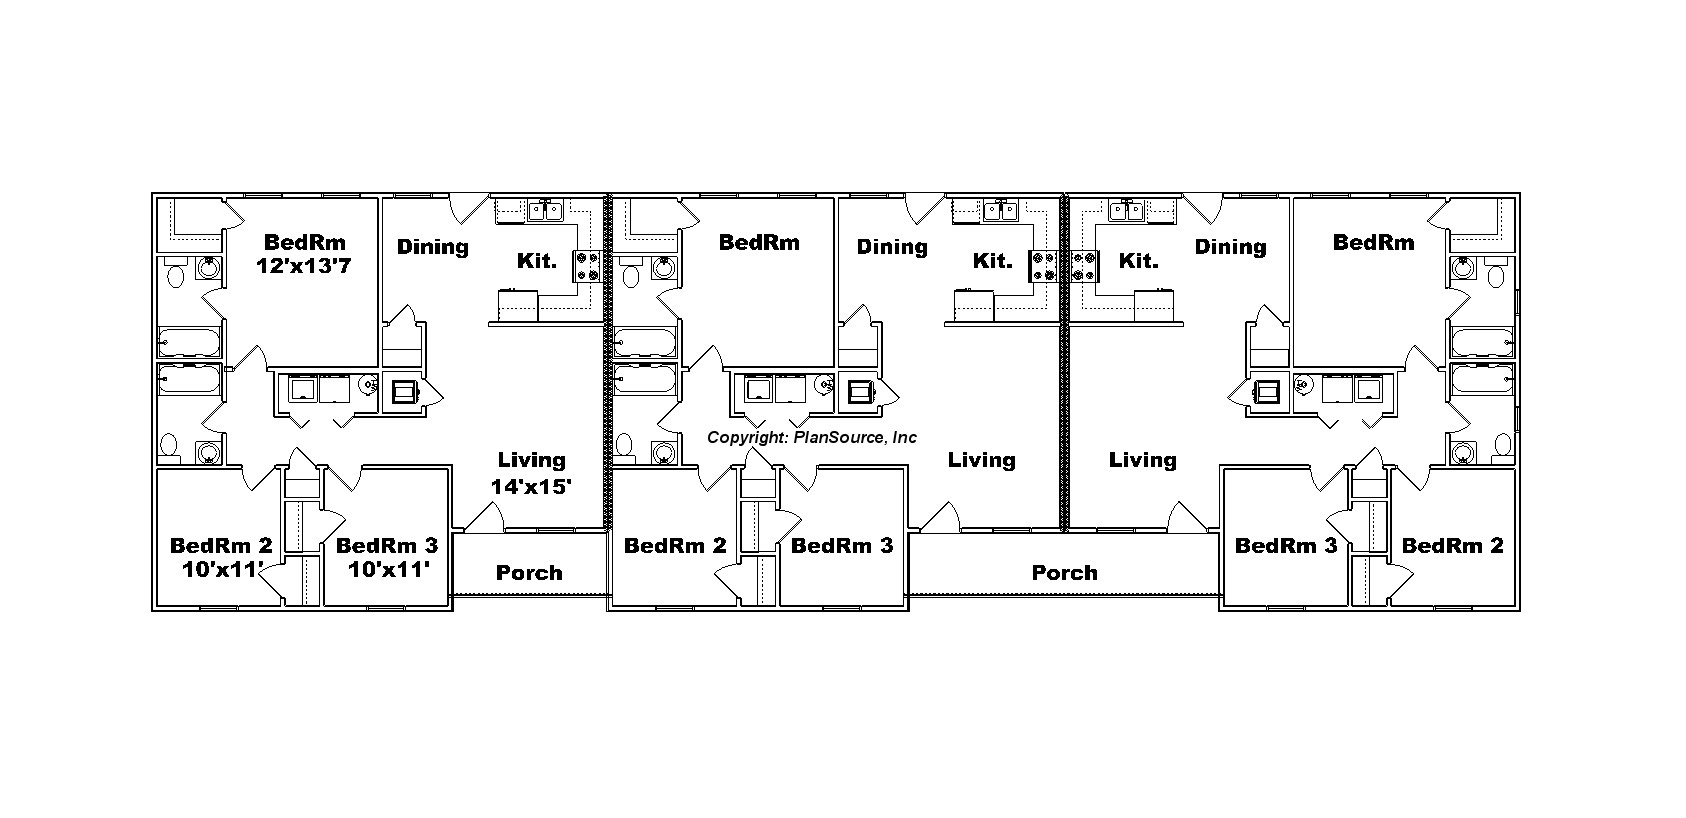 Triplex floor plans table of elements p for Triplex floor plans